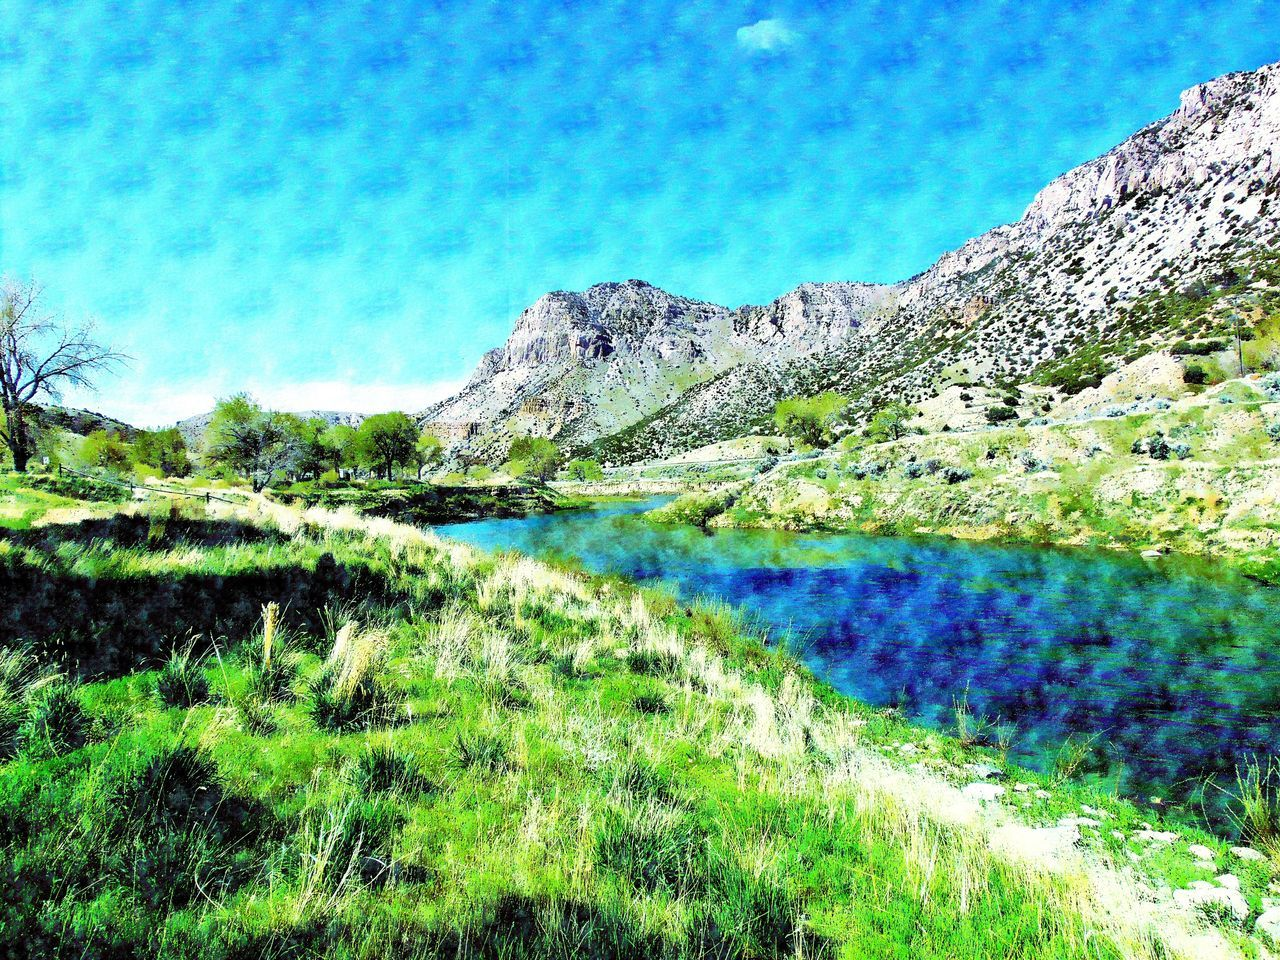 Beauty In Nature Blue Cloud Cloud - Sky Countryside Day Grass Green Color Idyllic Landscape Mountain Mountain Range Nature No People Outdoors Plant Remote Scenics Sky Tranquil Scene Tranquility Water Wind River Canyon Wyoming